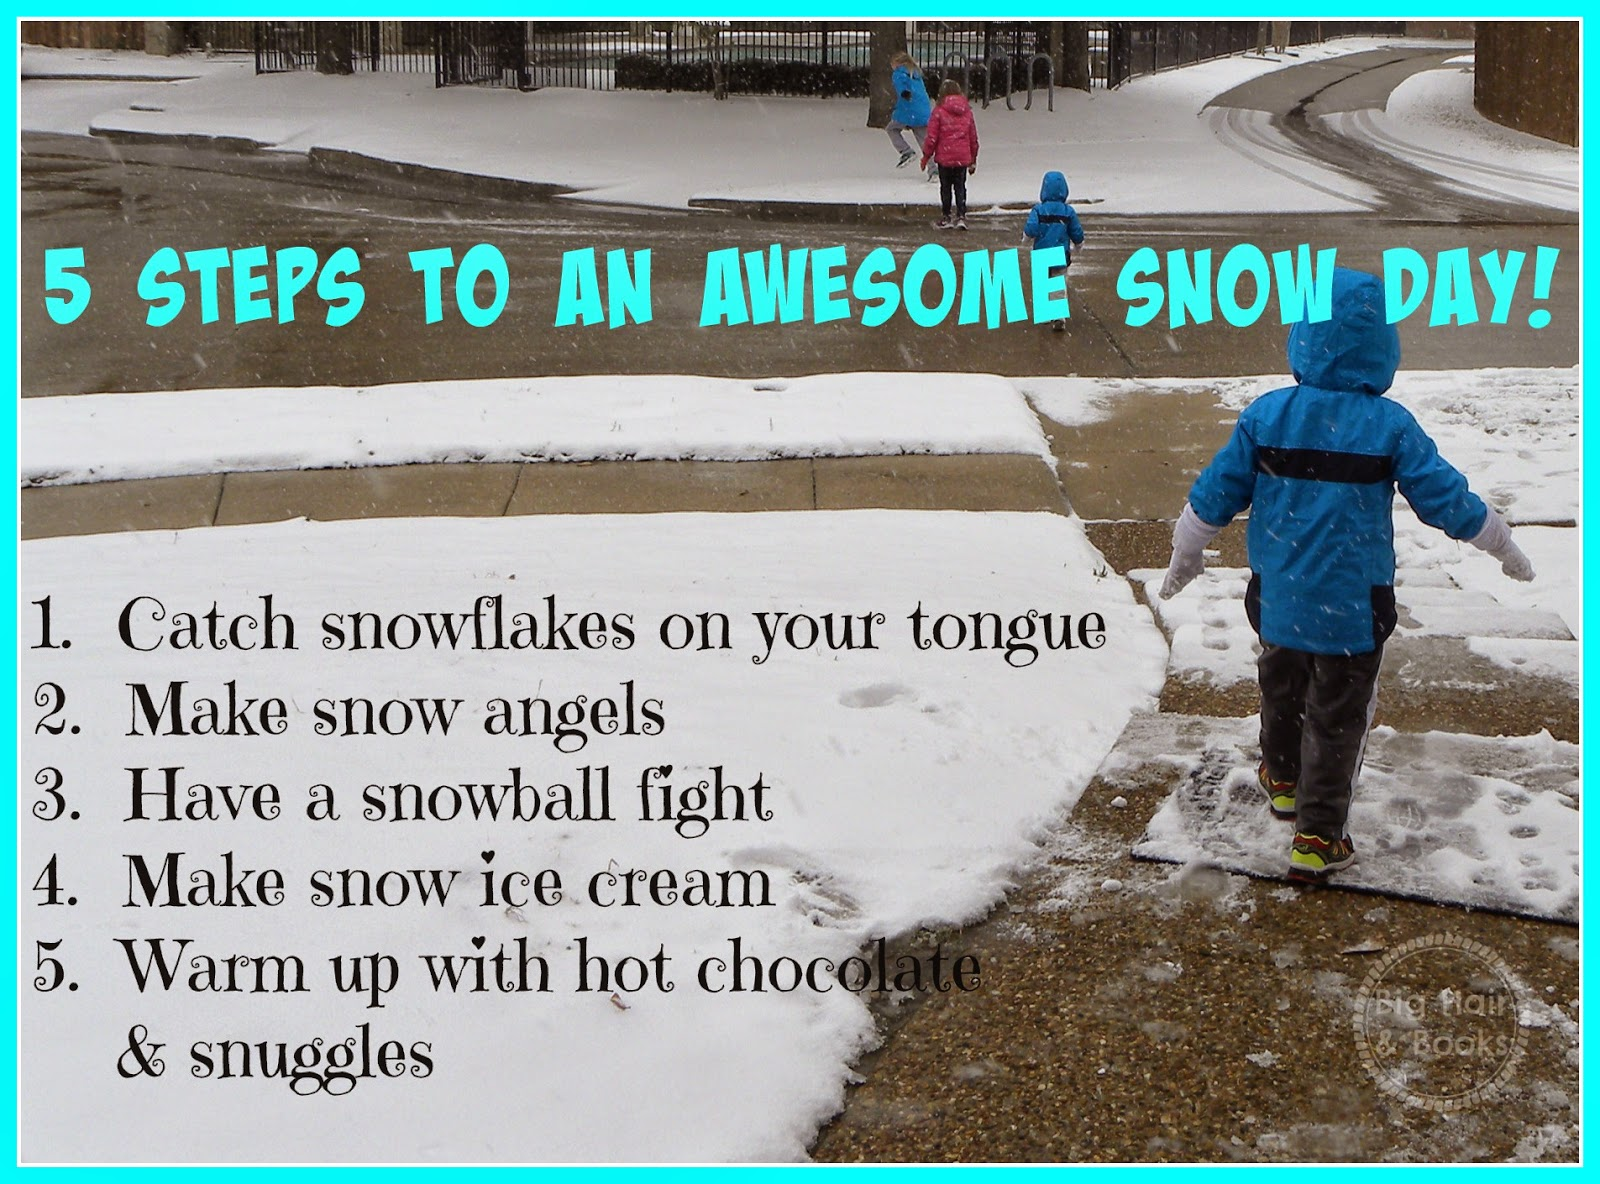 5 Steps to an Awesome Snow Day